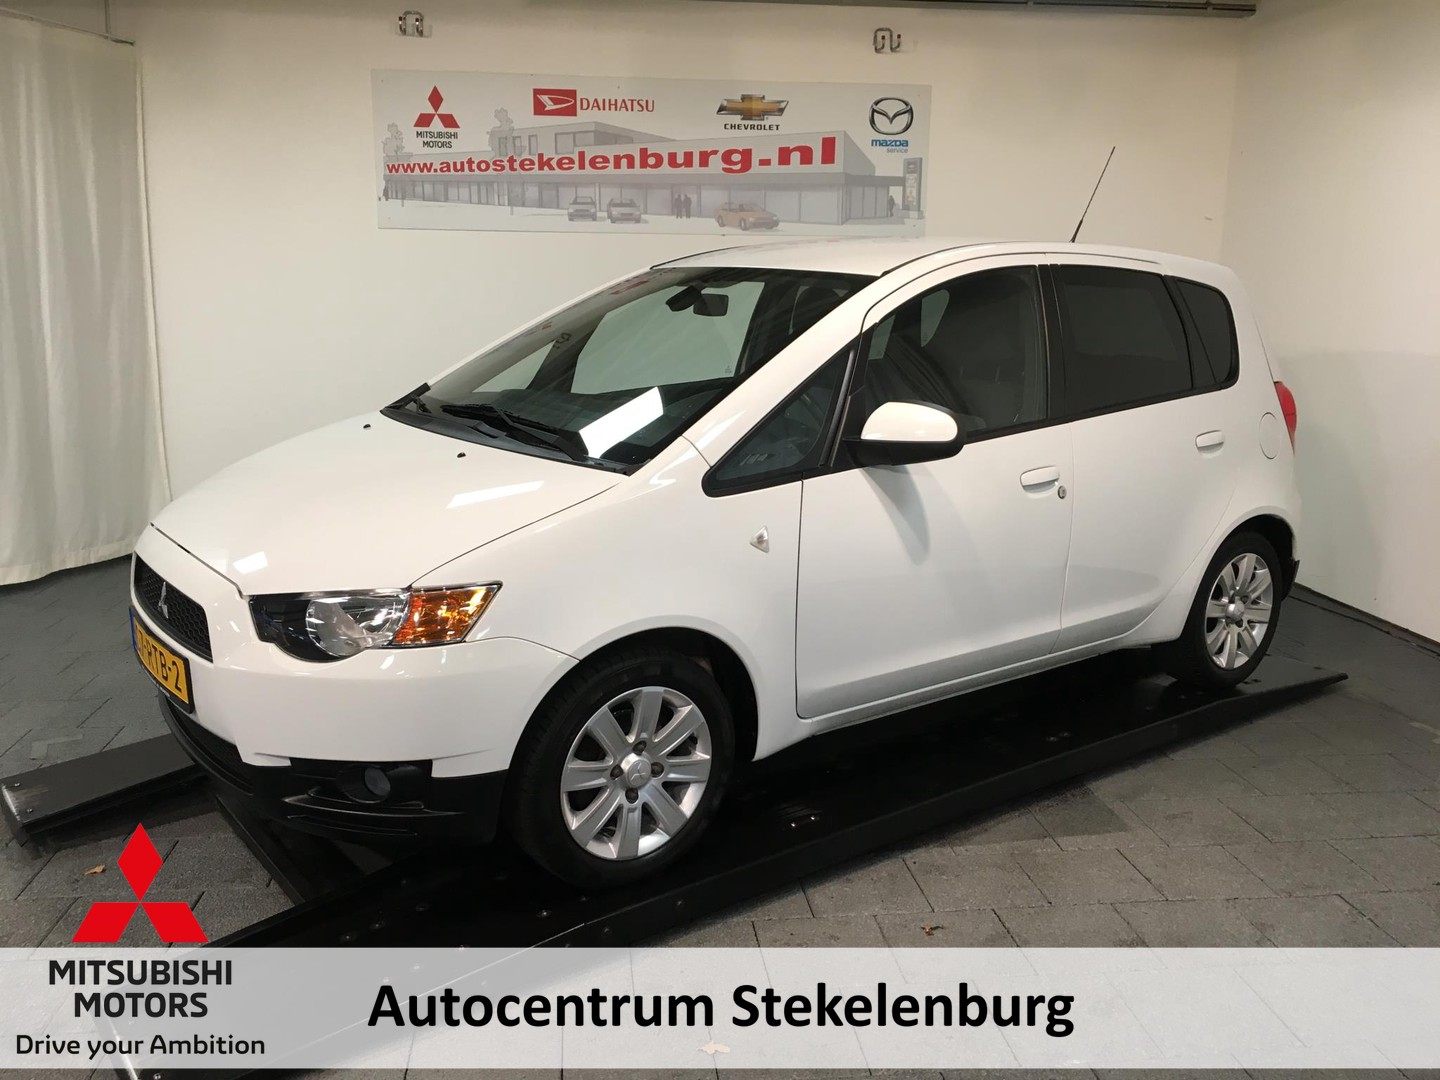 Mitsubishi Colt 1.3 edition two trekhaak, parkersensoren